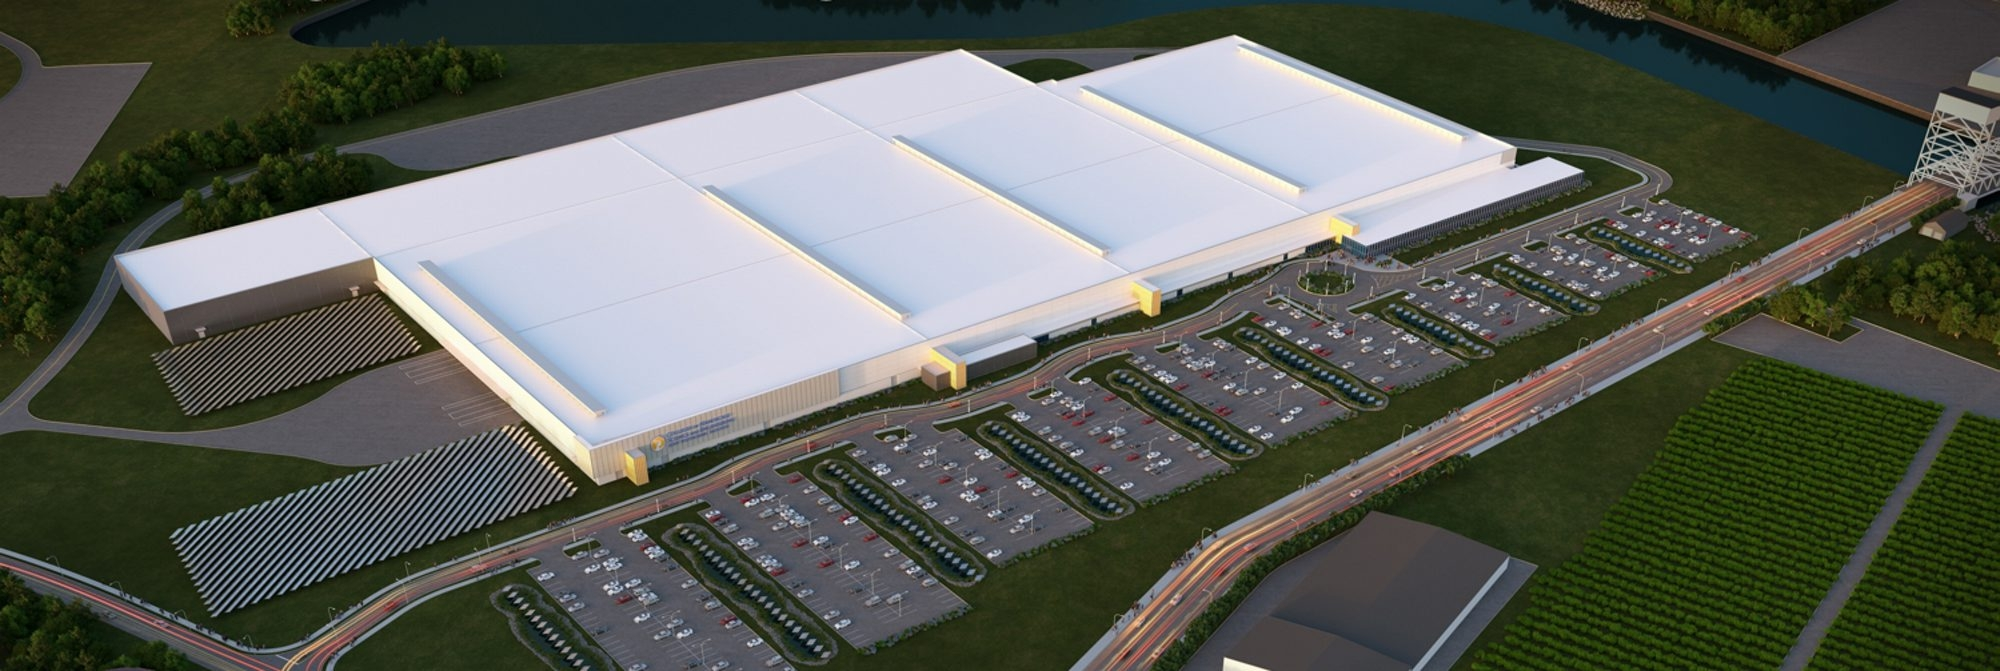 A rendering of the 1 million-square-foot factory being built on the RiverBend site on South Park Avenue.